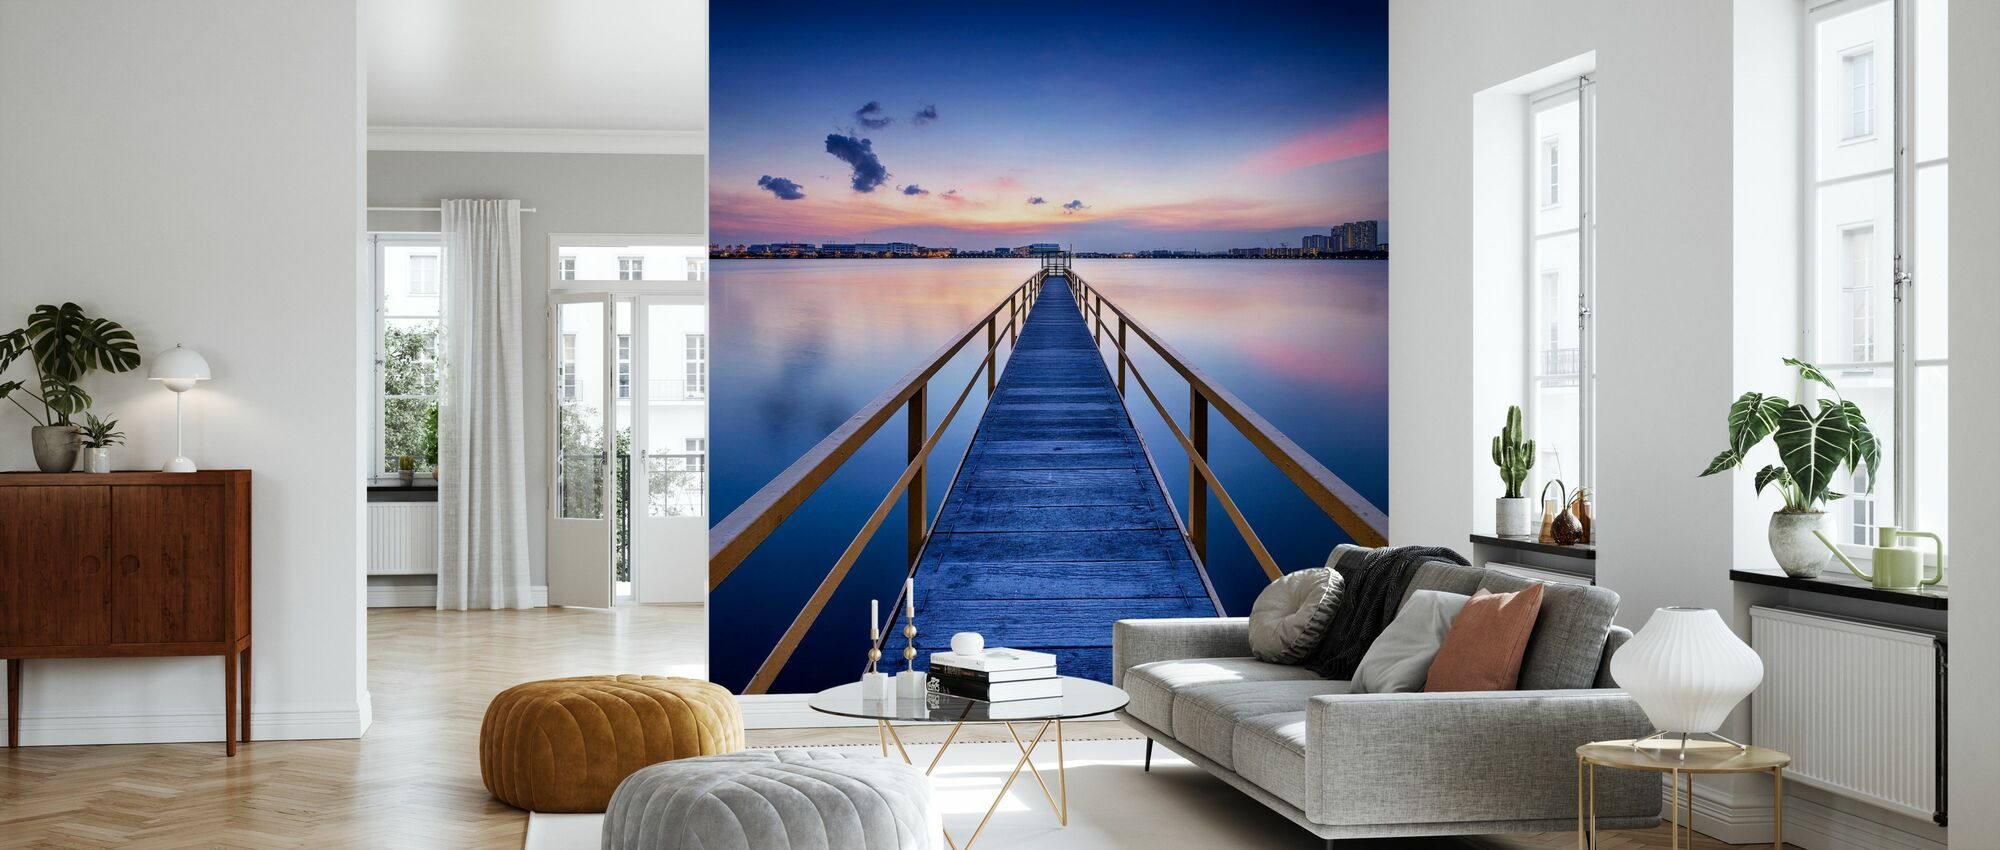 Rosy Sunset Pier - Wallpaper - Living Room